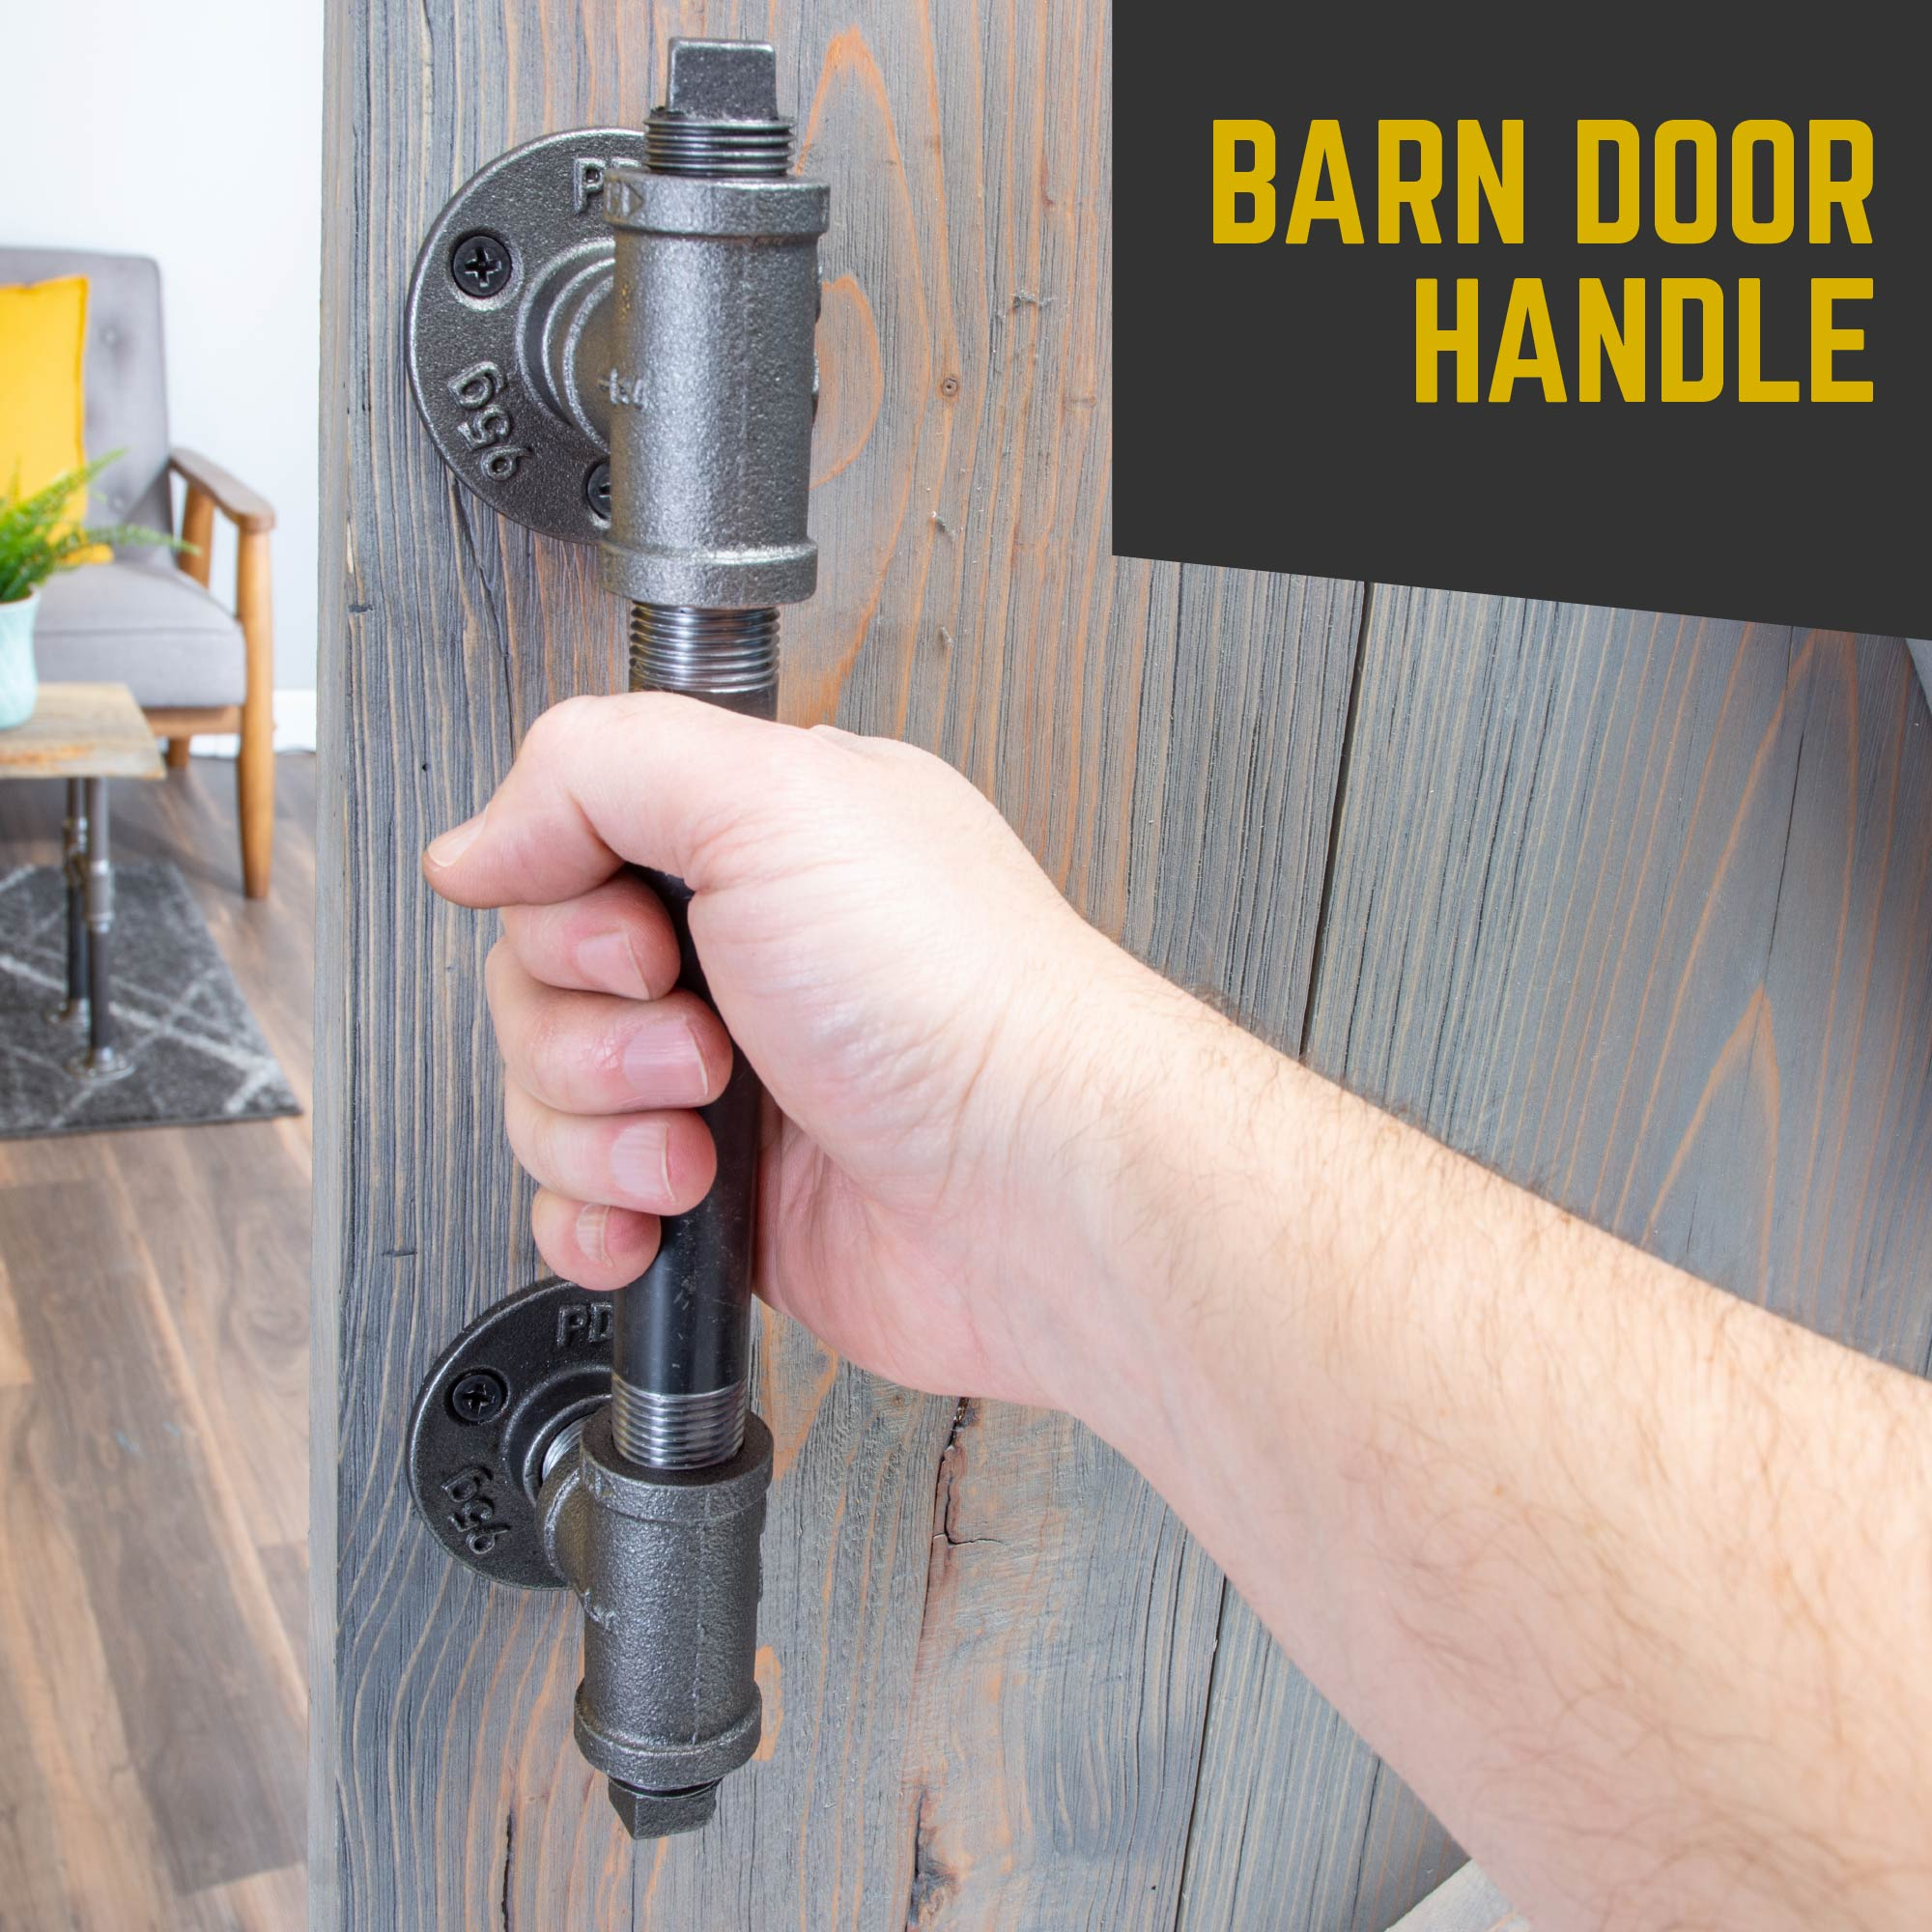 1/2 in. Tee Barn Door Handle- Mini Flange – 10.75 In. L - Pipe Decor